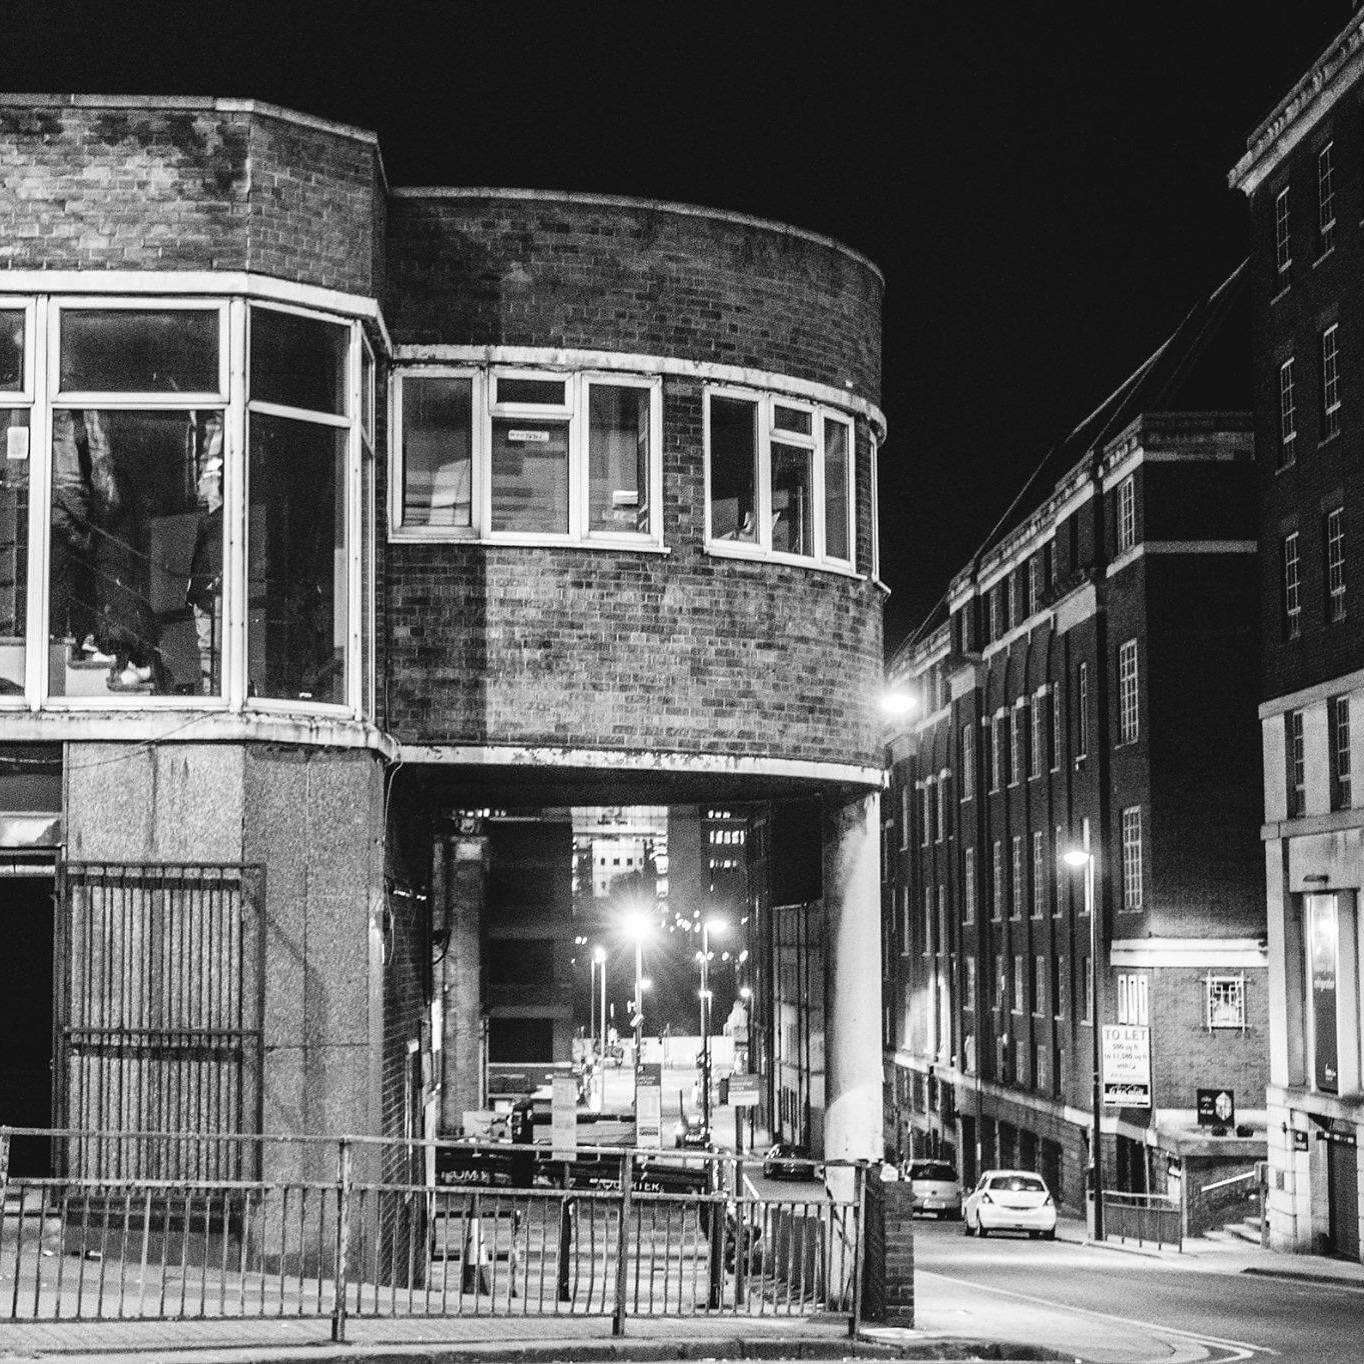 black and white image of the old red bus station